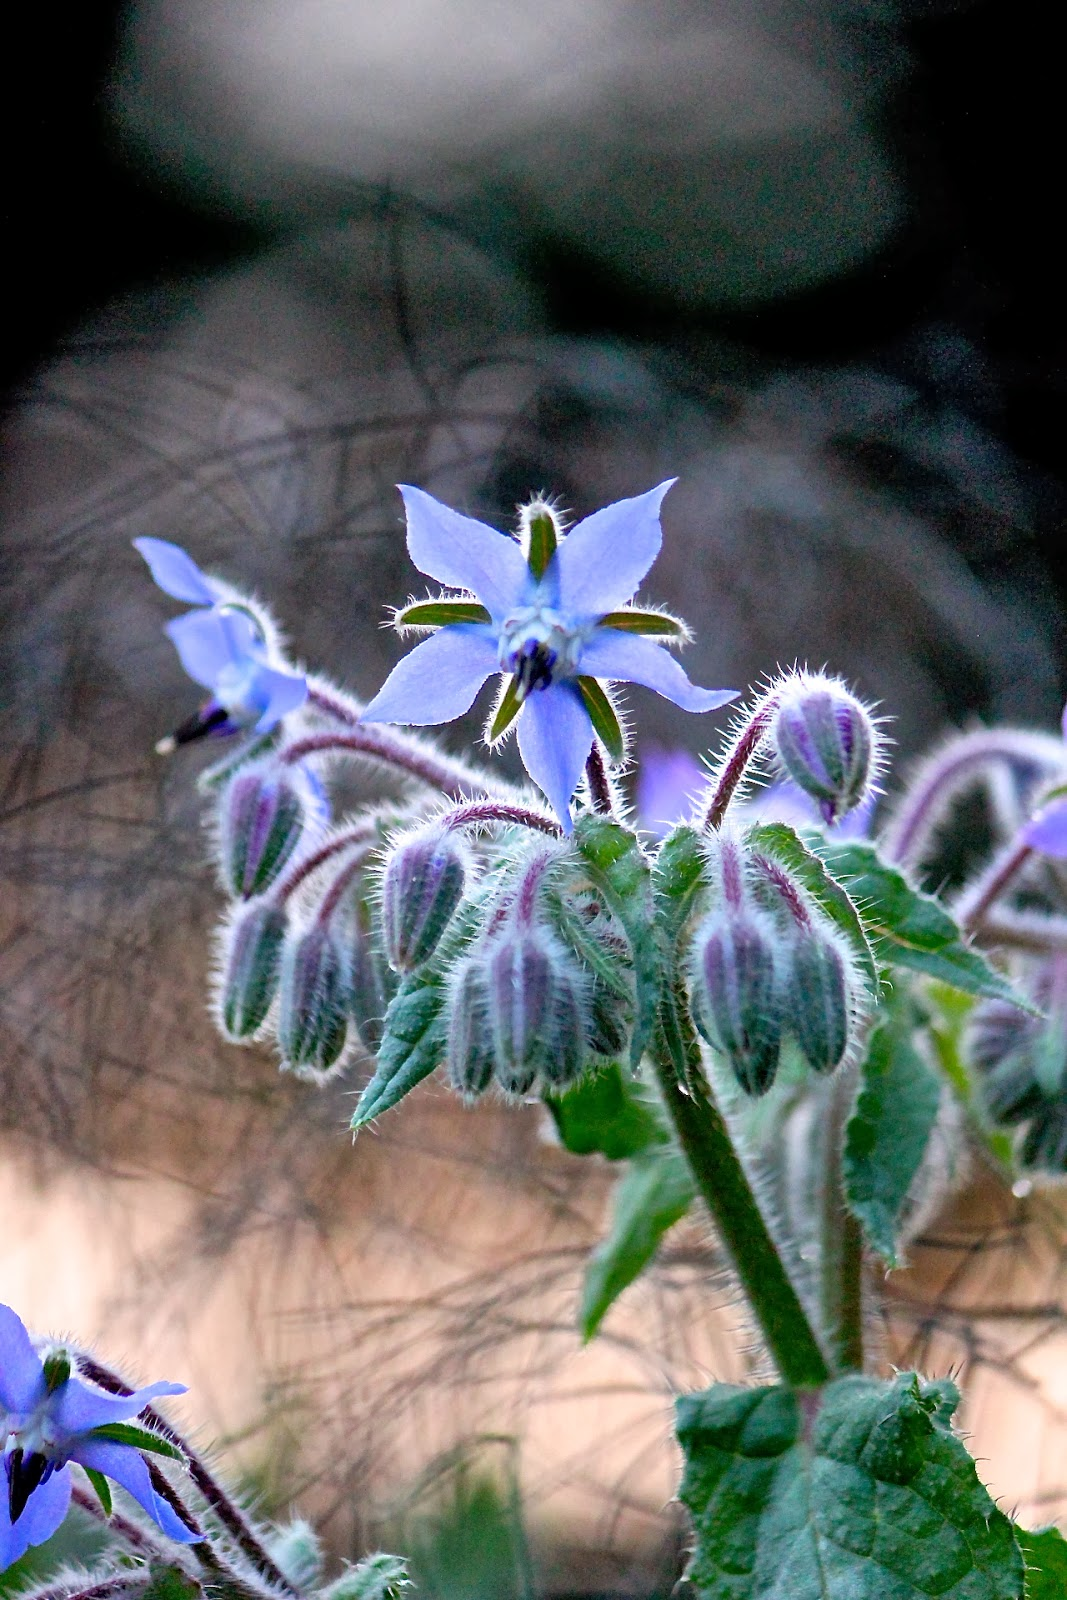 borage+blossom+at+dawn.jpg